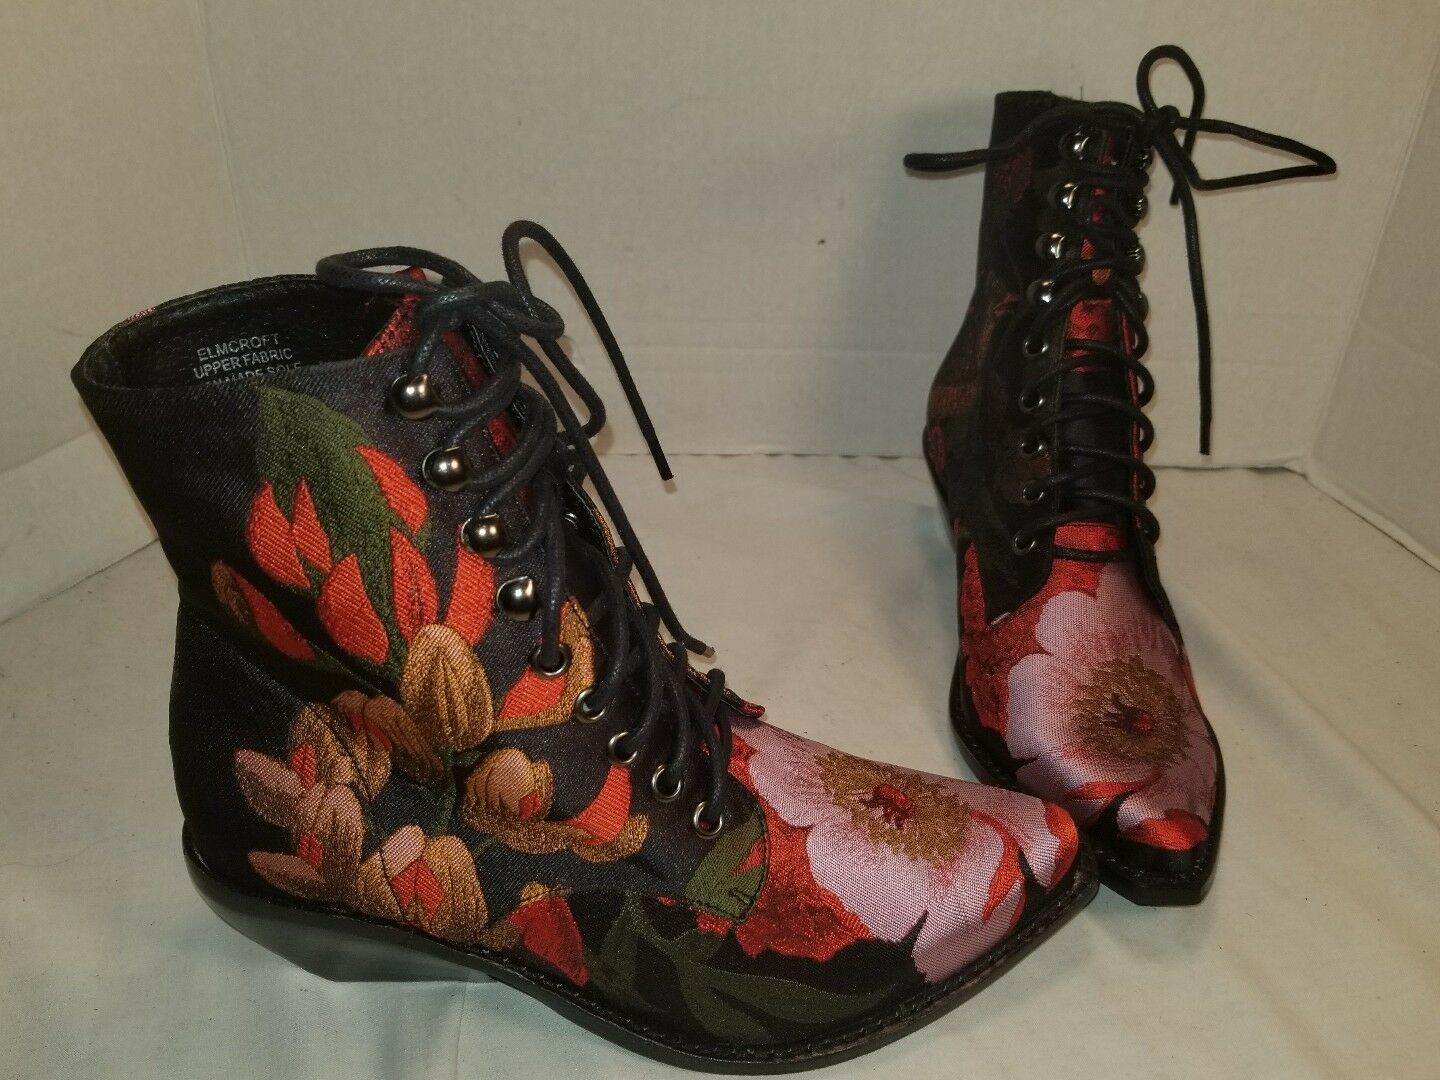 NEW JEFFREY CAMPBELL GROVE ELMCROFT  EMBROIDERED FLORAL LACE UP BOOTS US 7